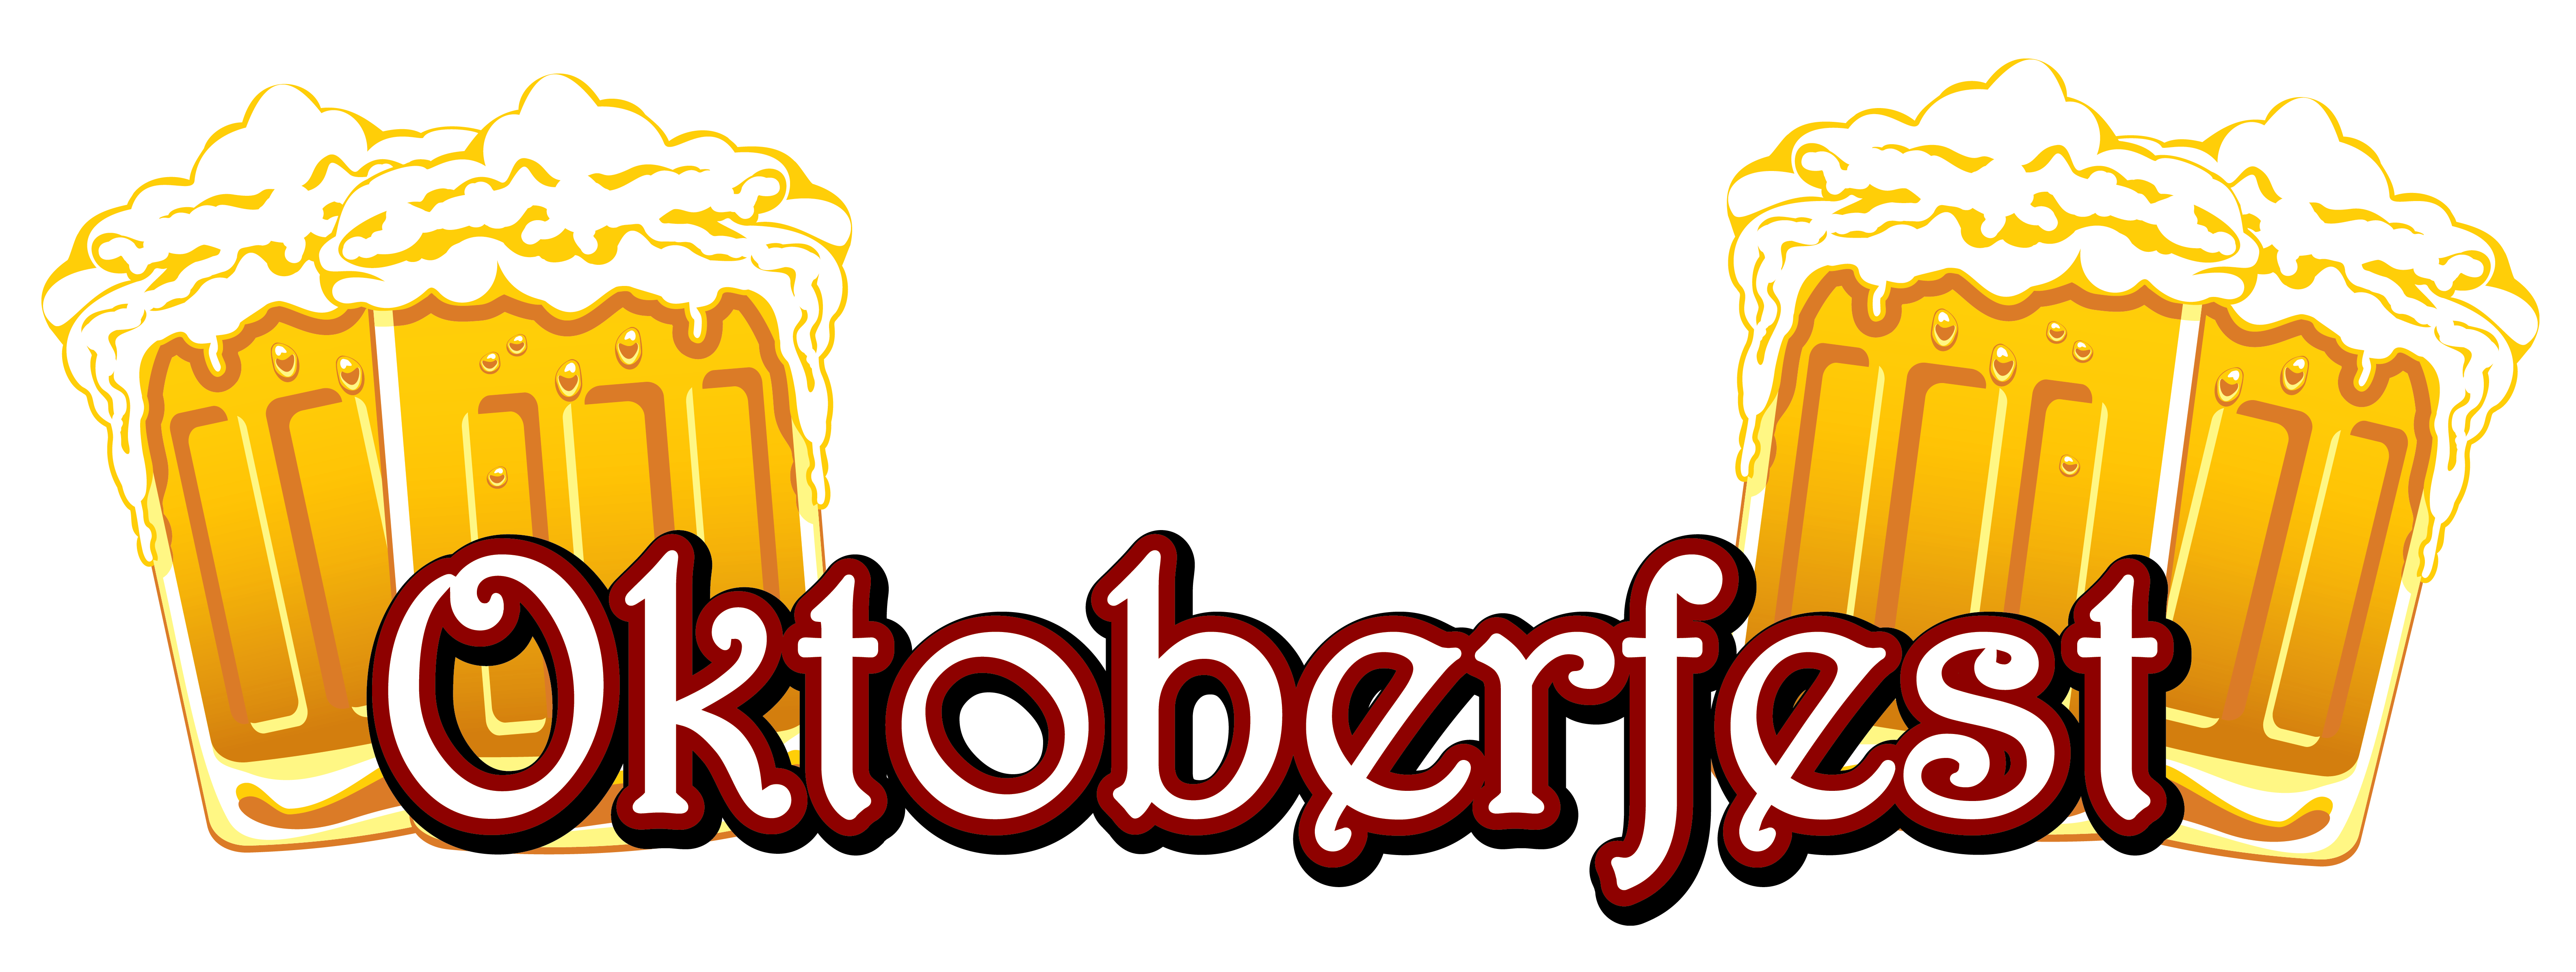 6342x2393 Oktoberfest Text And Beers Png Clipart Imageu200b Gallery